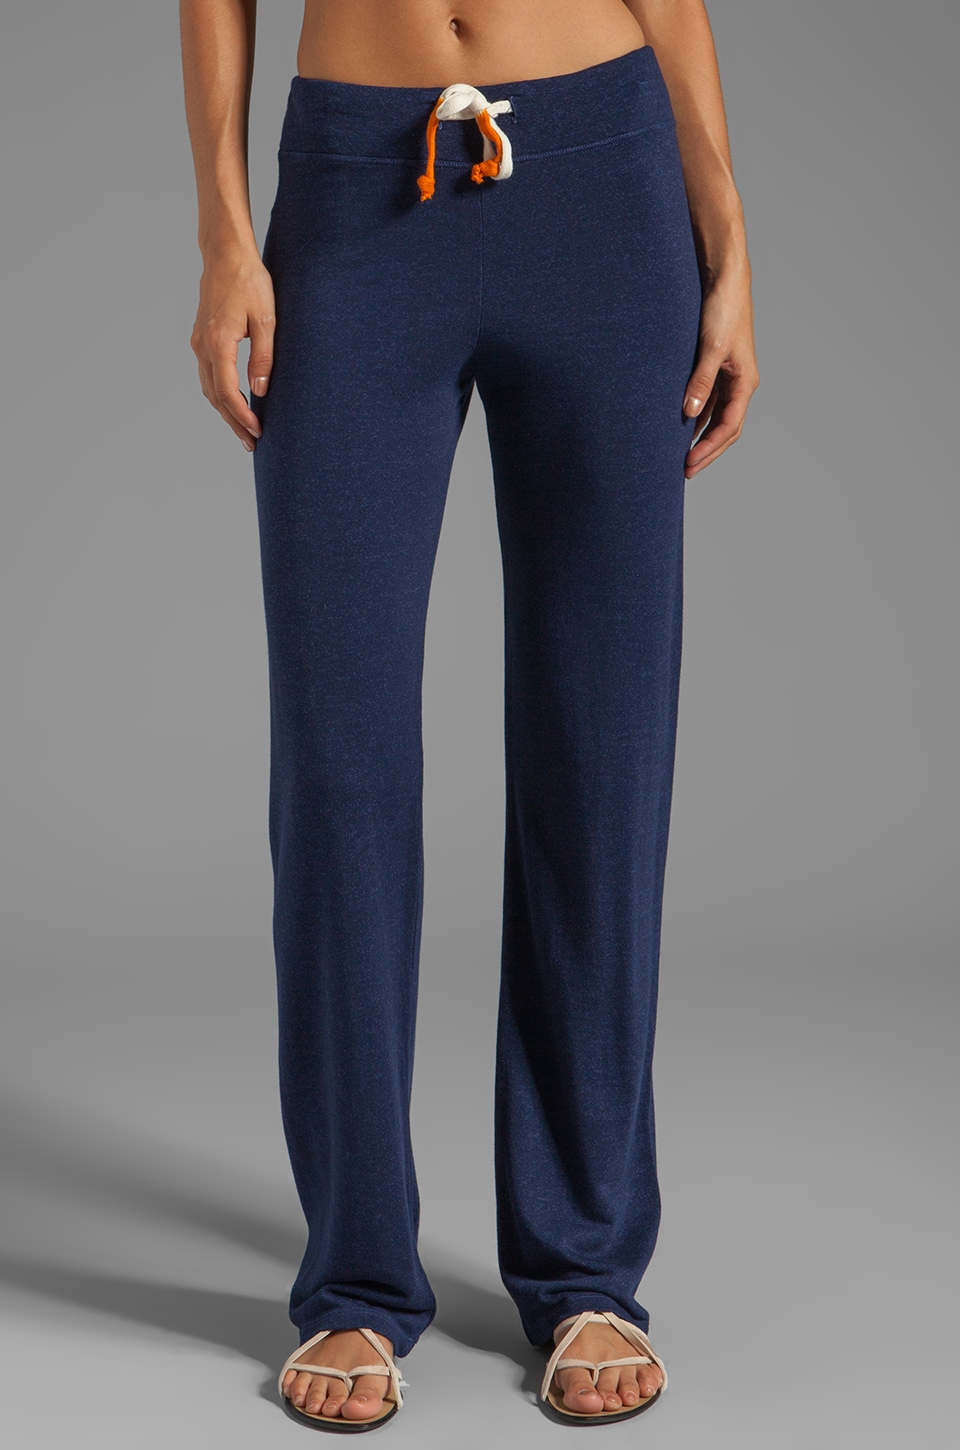 SUNDRY Lounge Sweatpants in Deep Sea